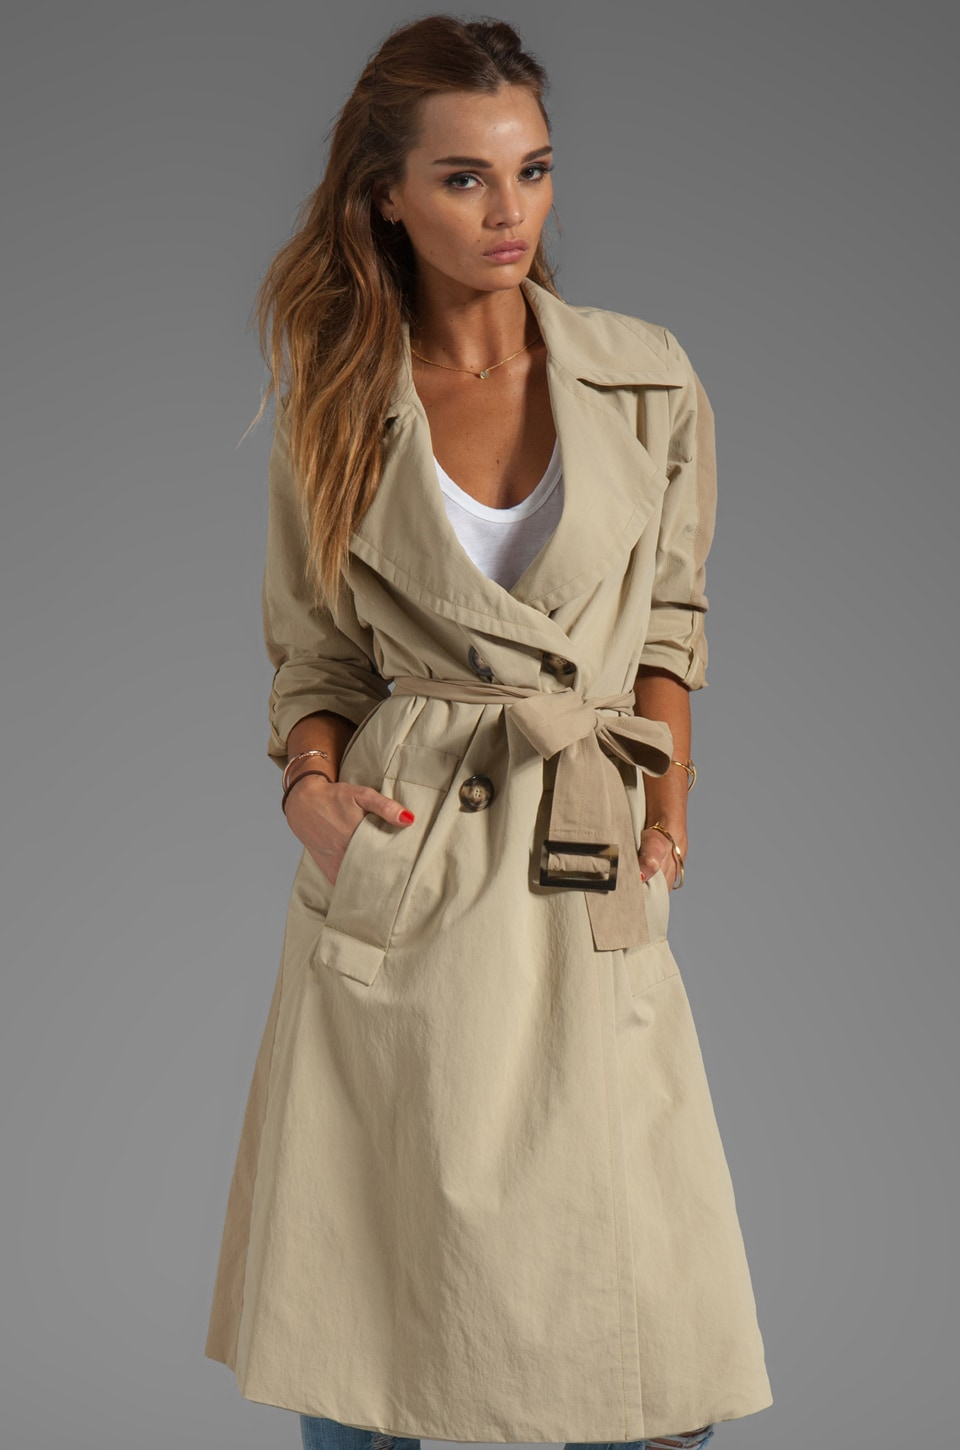 SONIA by Sonia Rykiel Long Trench Jacket in Beige/Light Beige/Beige